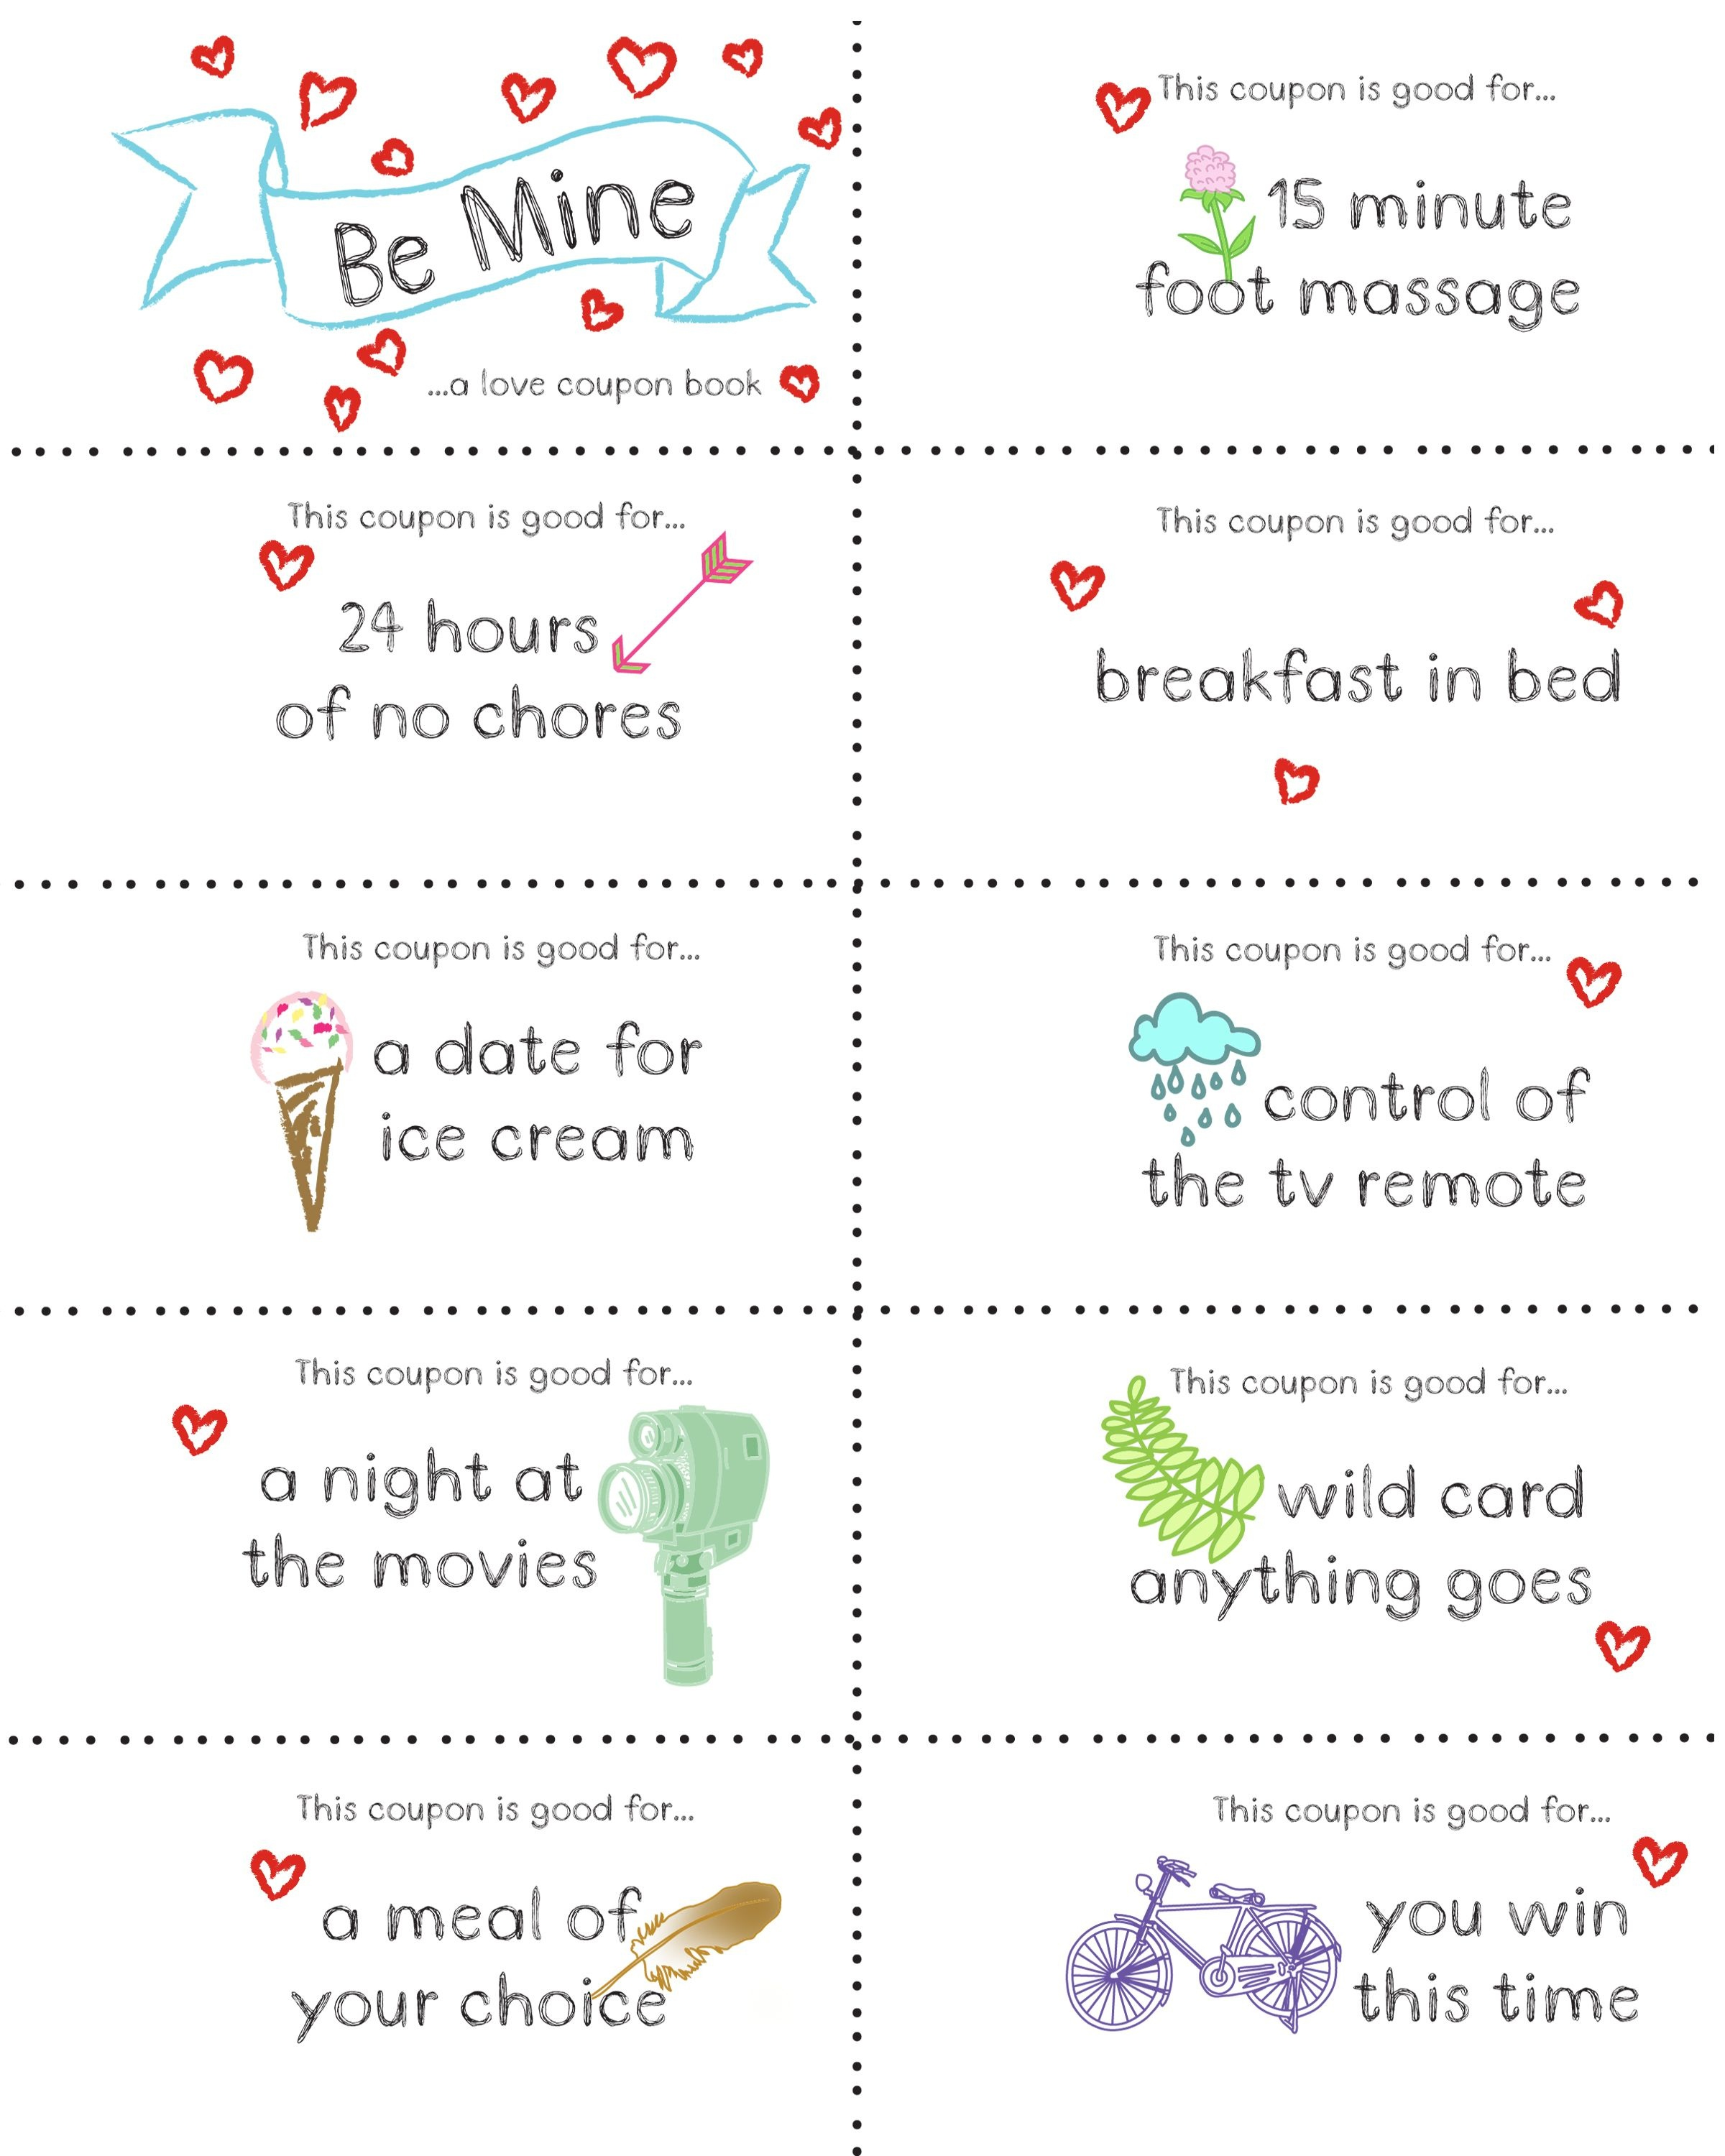 Last Minute Valentine Free Coupon Book Printable   Seasonal   Diy - Free Printable Coupon Book For Boyfriend